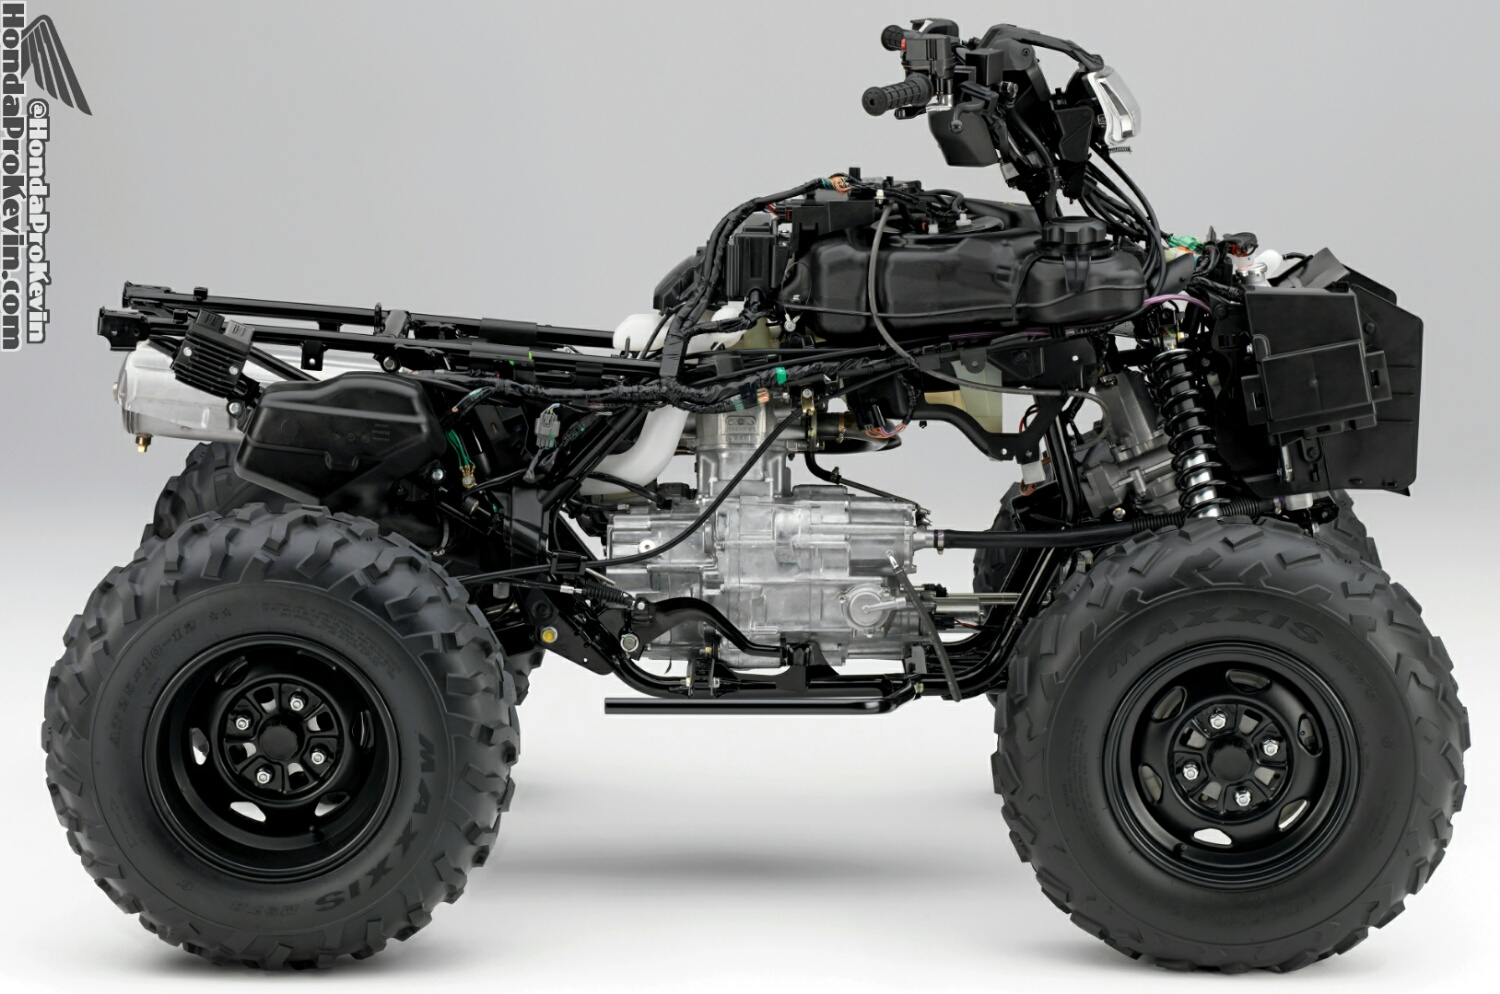 2016 Honda Foreman 500 ATV Frame / Engine - Review / Specs / Price / HP